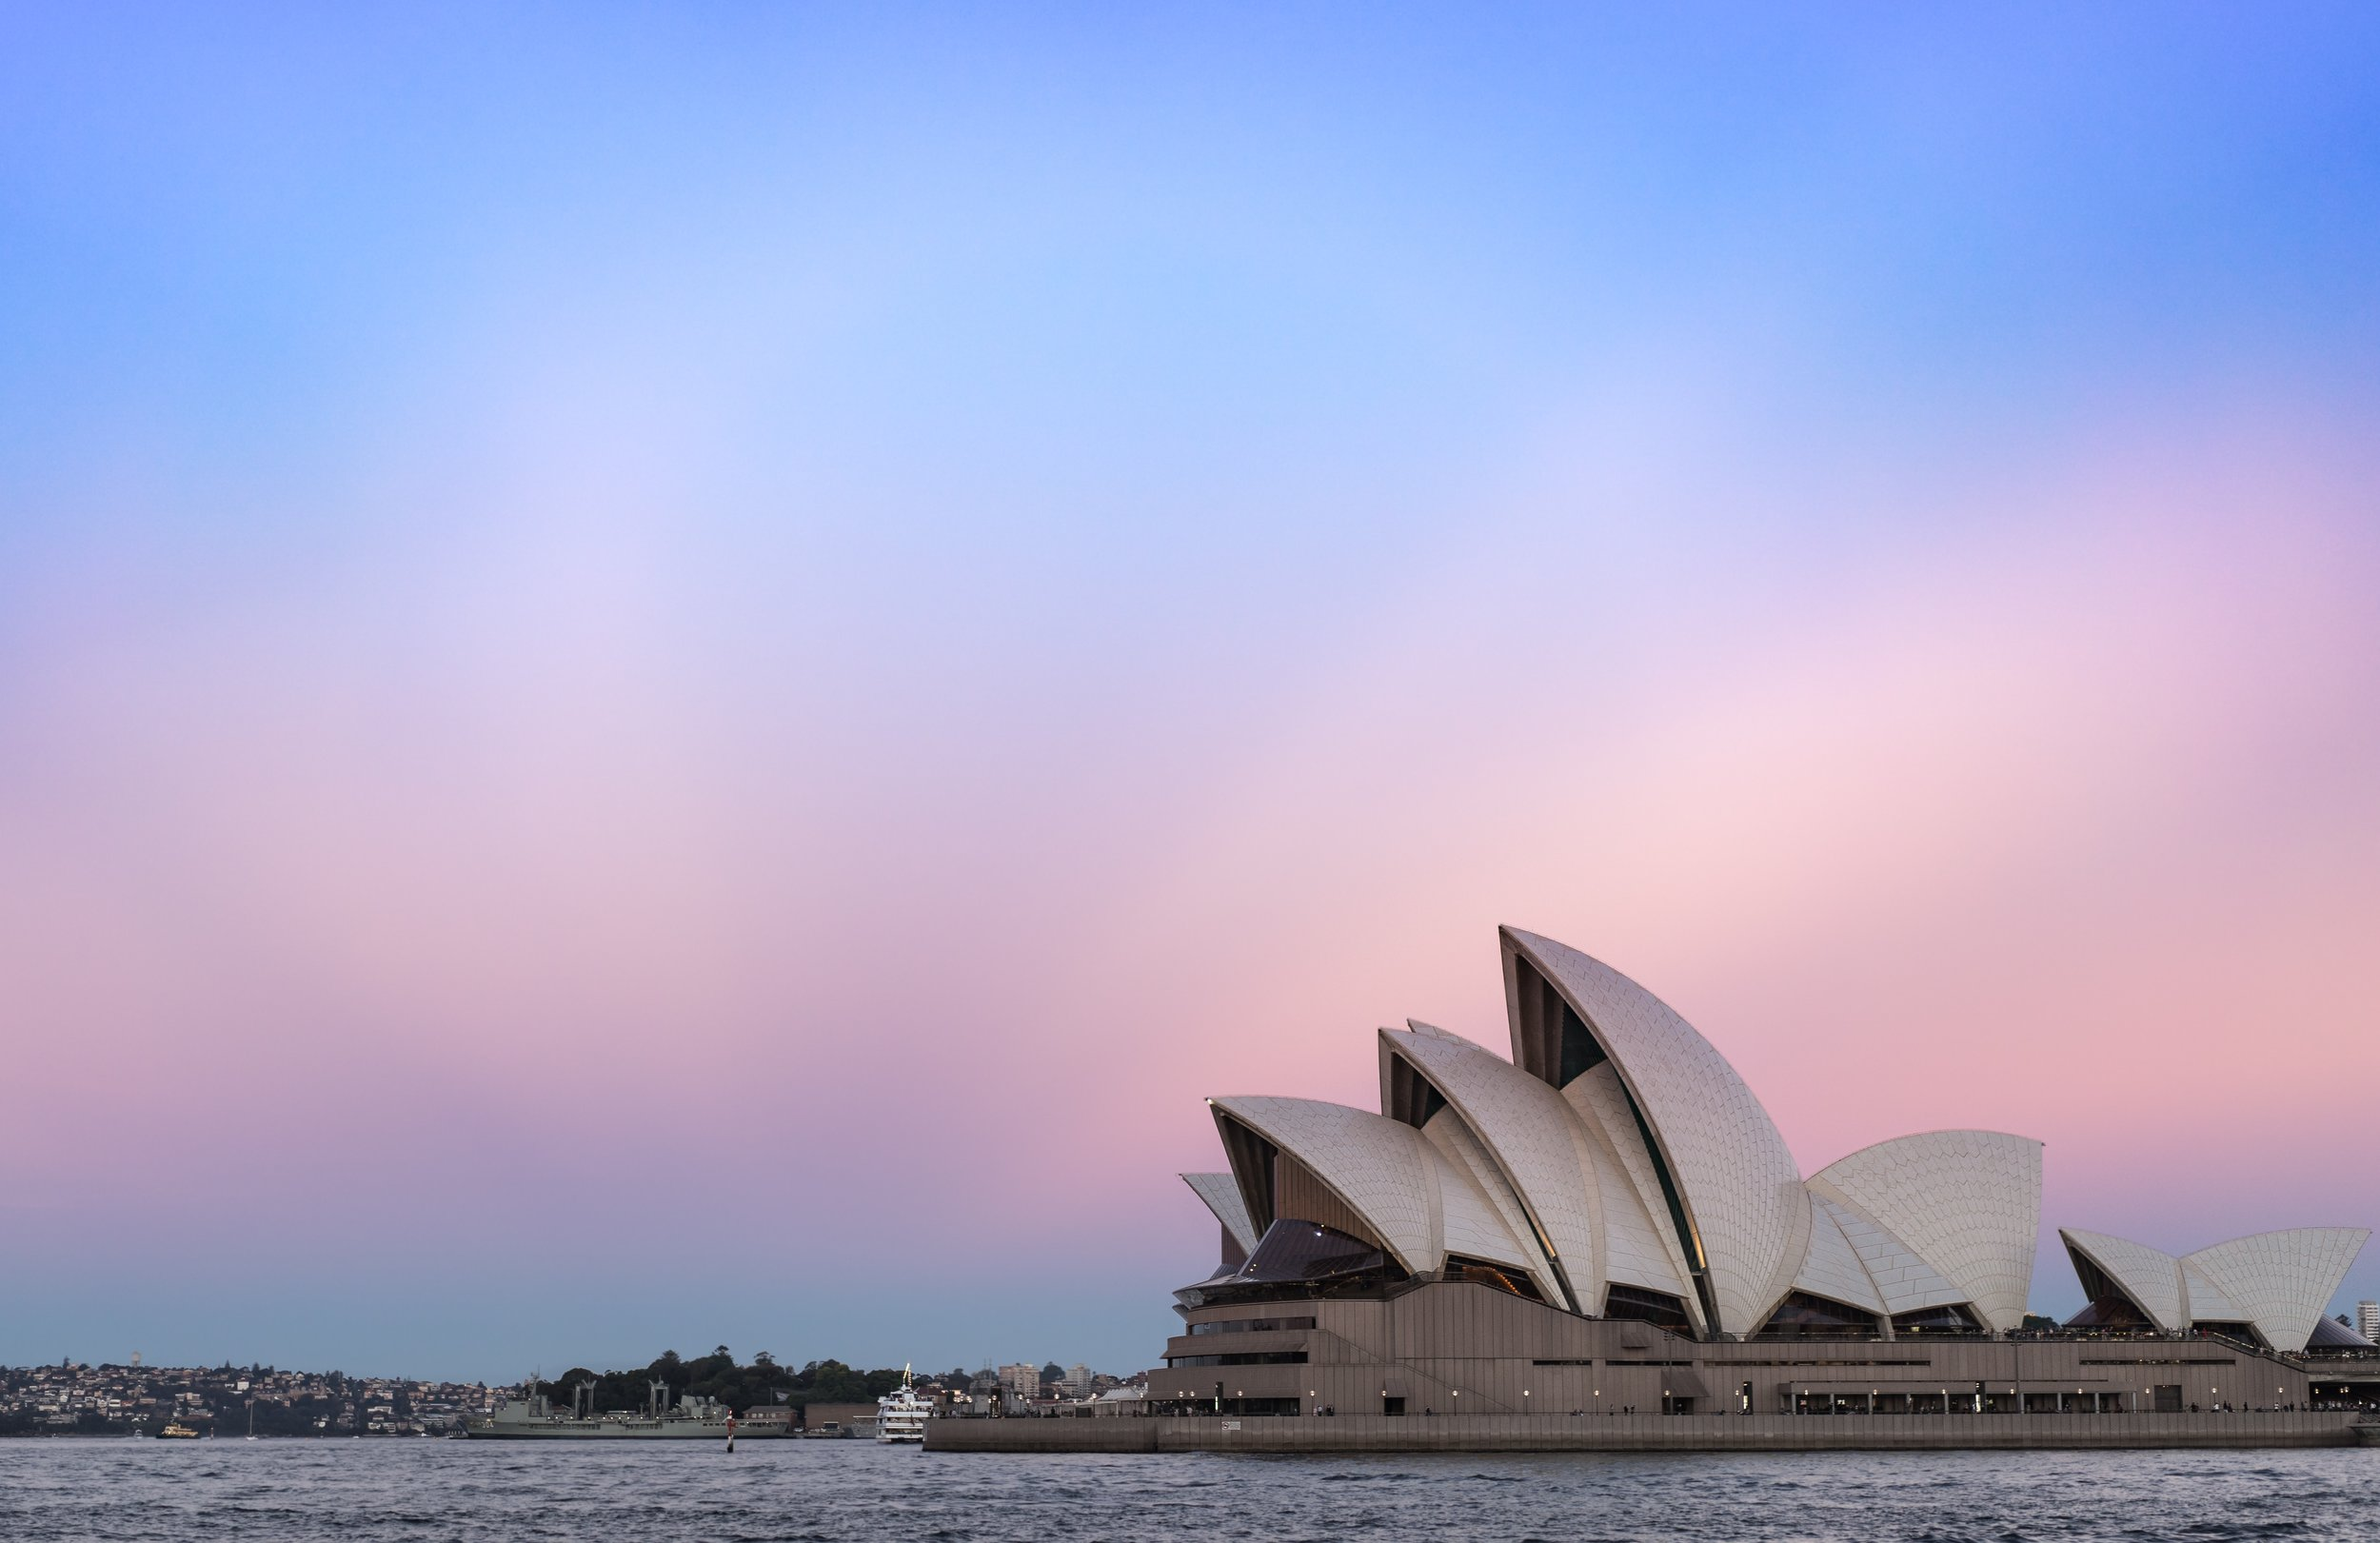 AUSTRALIA - FIND OUT MORE